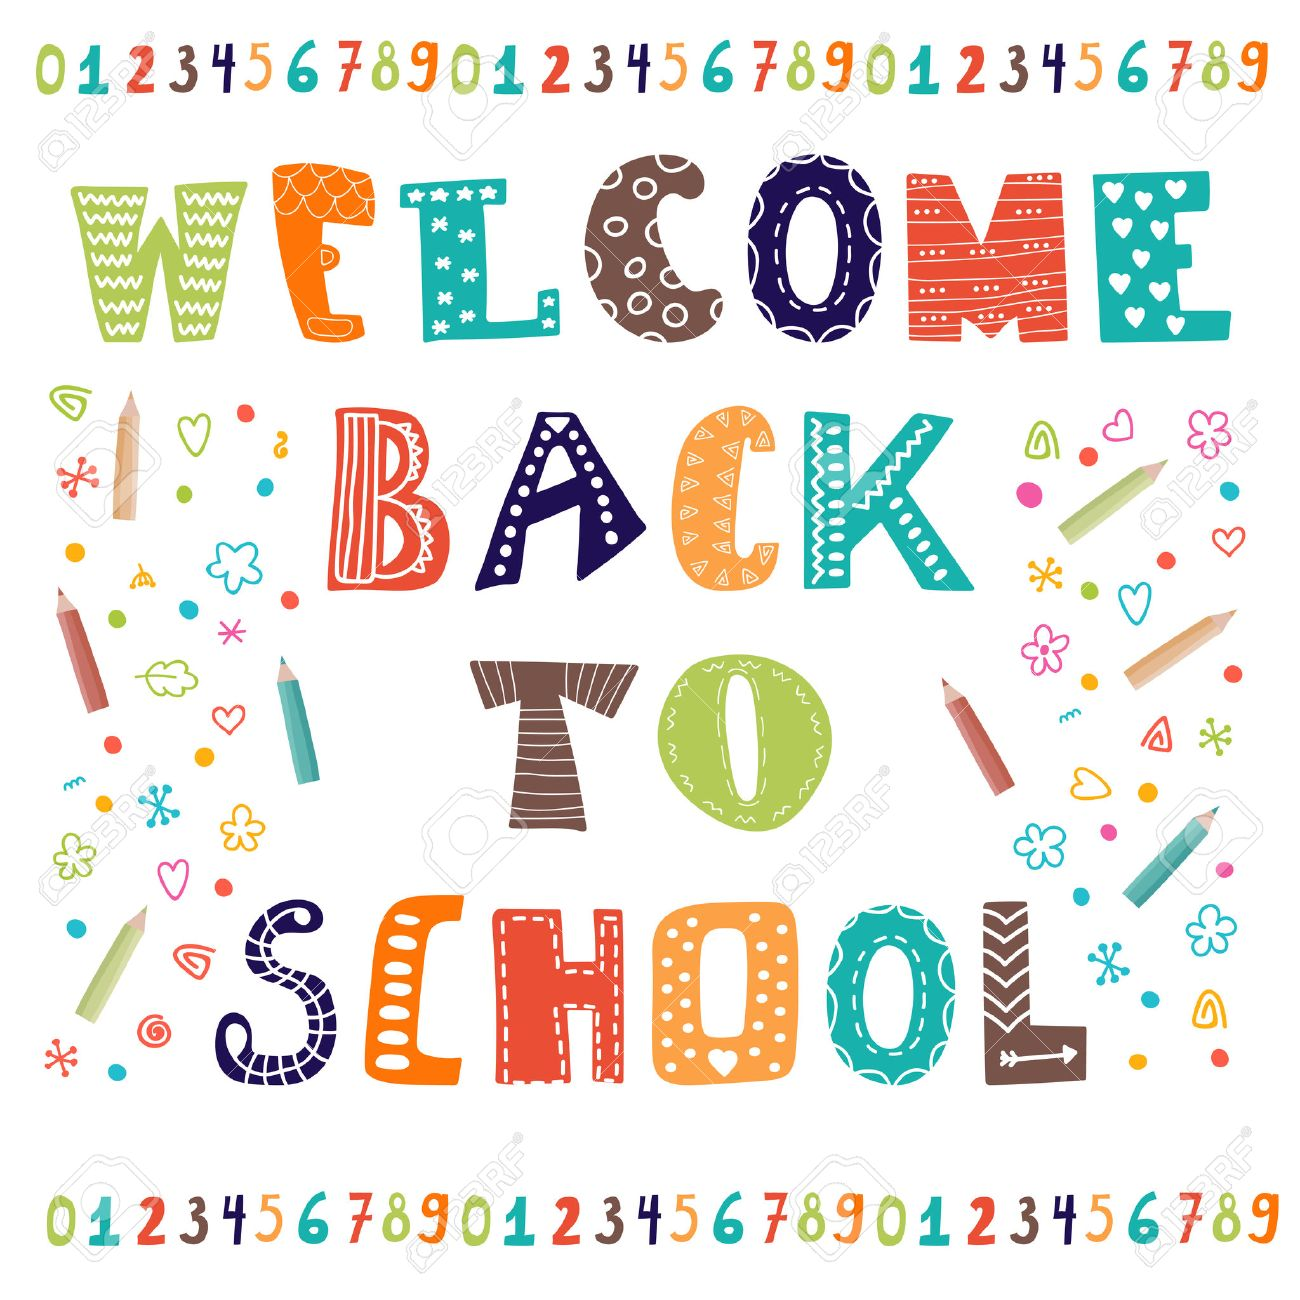 Image result for welcome to school images